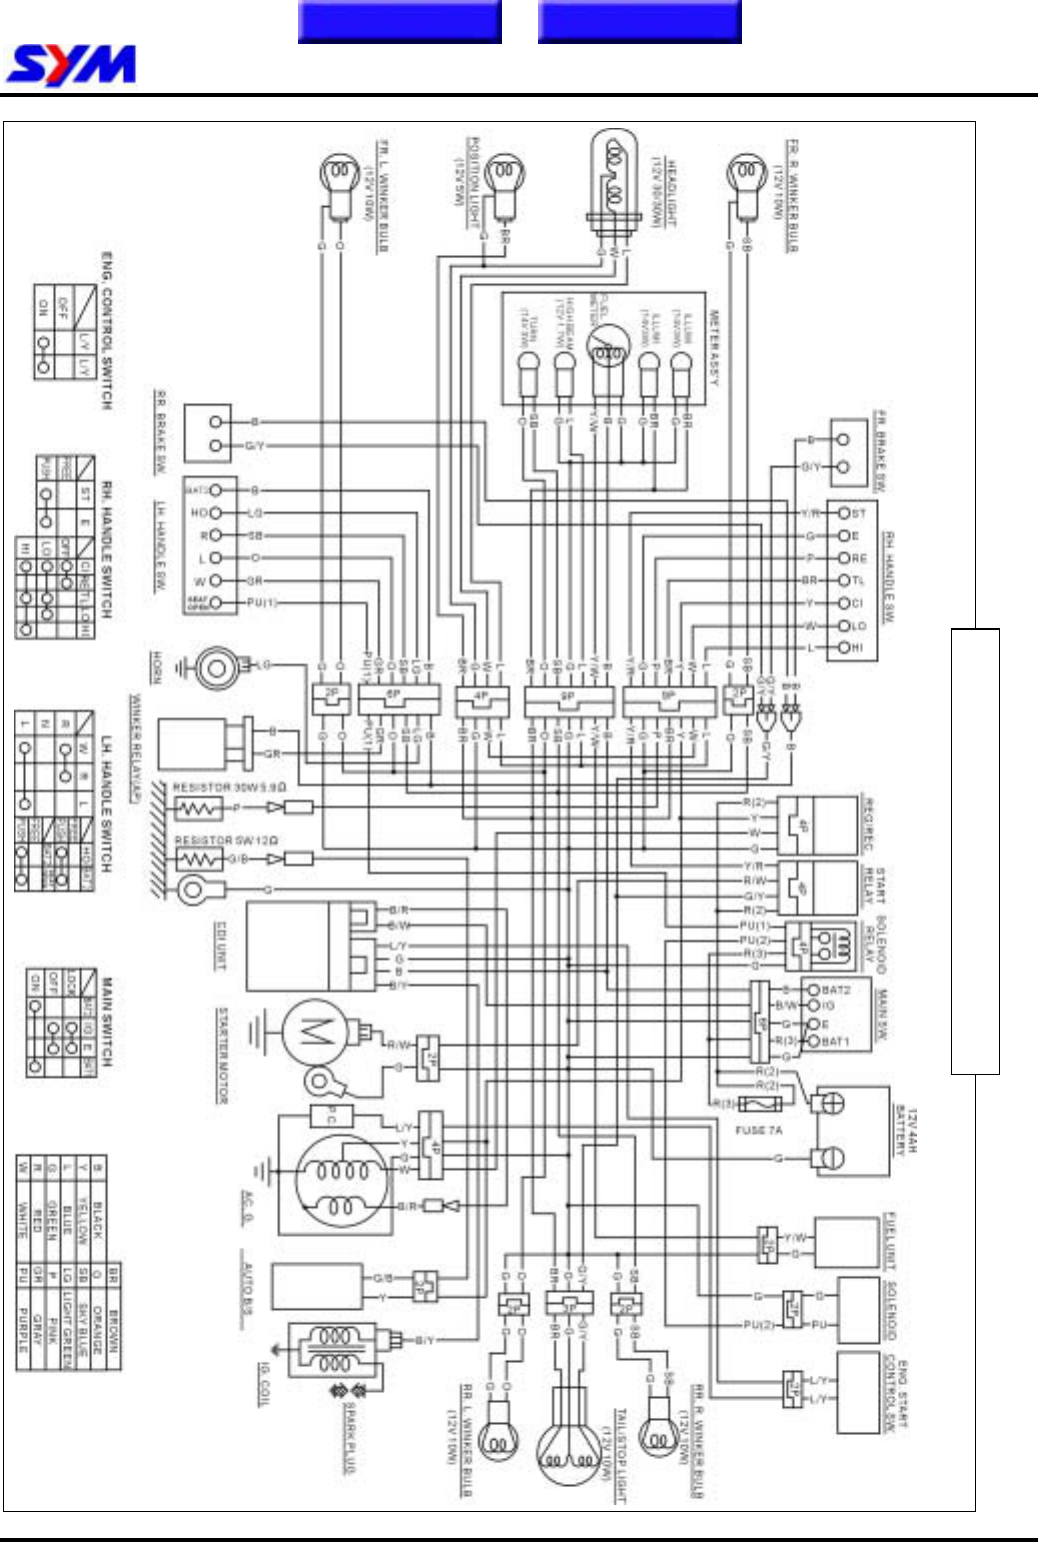 Electrical Diagram additionally B F C further Aw Factorydirectwd L furthermore Gtd Processing Diagram Electrical Work Wiring Diagram moreover Wiring Diagrams Of Ford V Fairlane Part. on electrical schematic wiring diagram